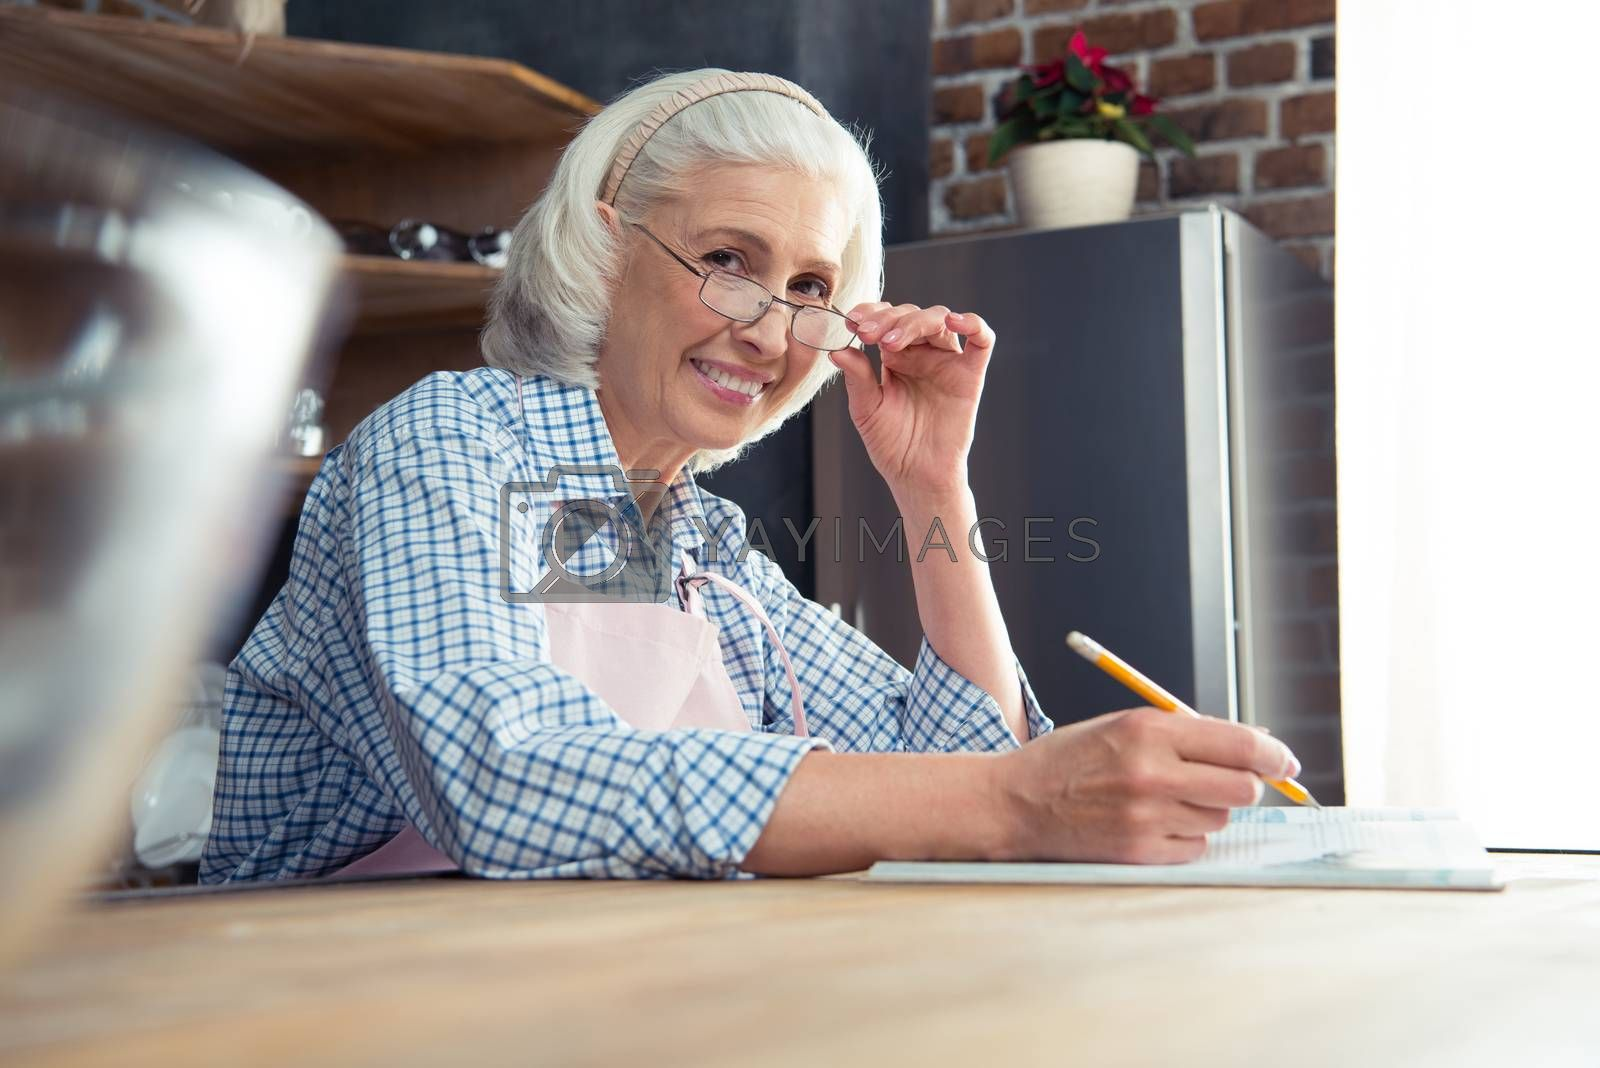 Smiling senior woman with cookbook looking at camera